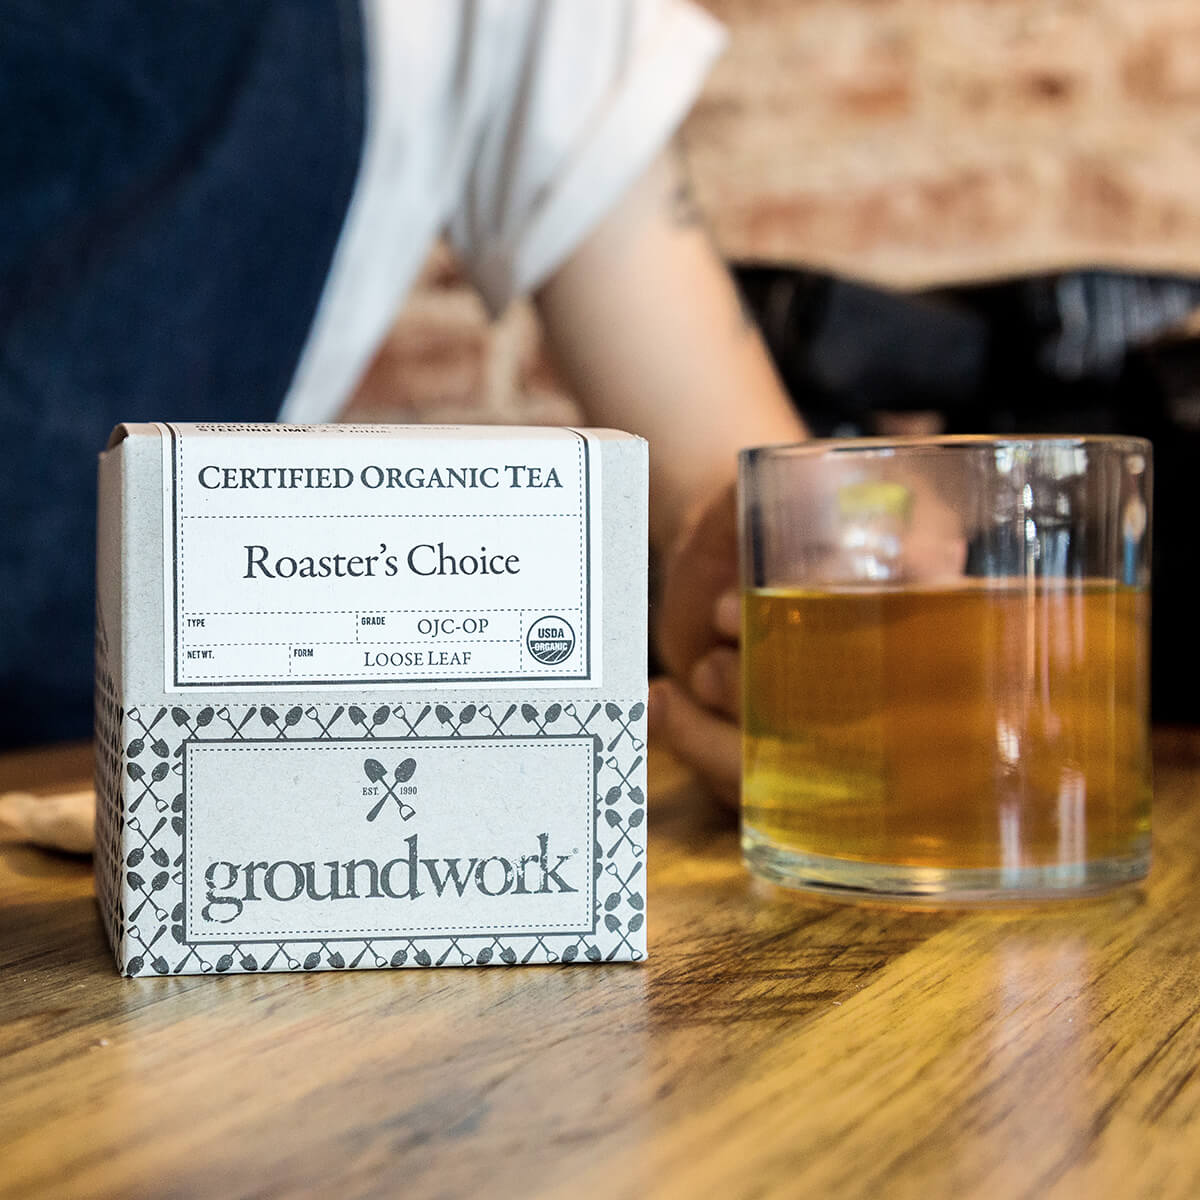 box of Groundwork Roaster's Choice Certified Organic Tea next to glass mug of tea